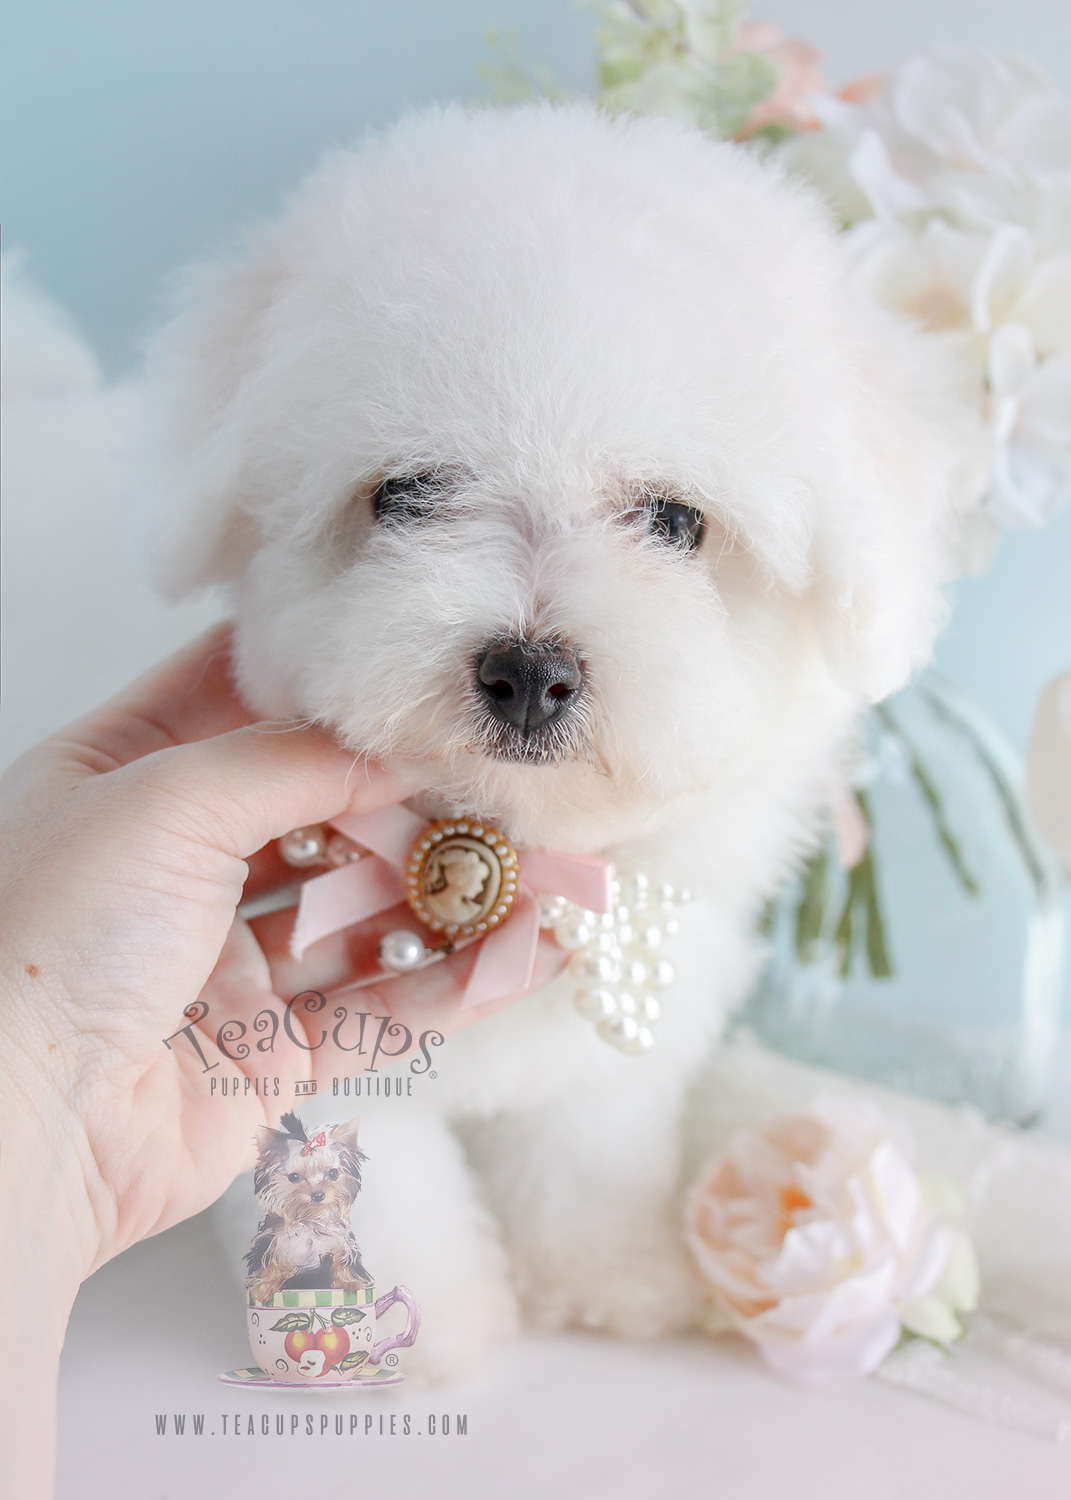 Bichon Frise Puppies Davie Teacups Puppies Amp Boutique